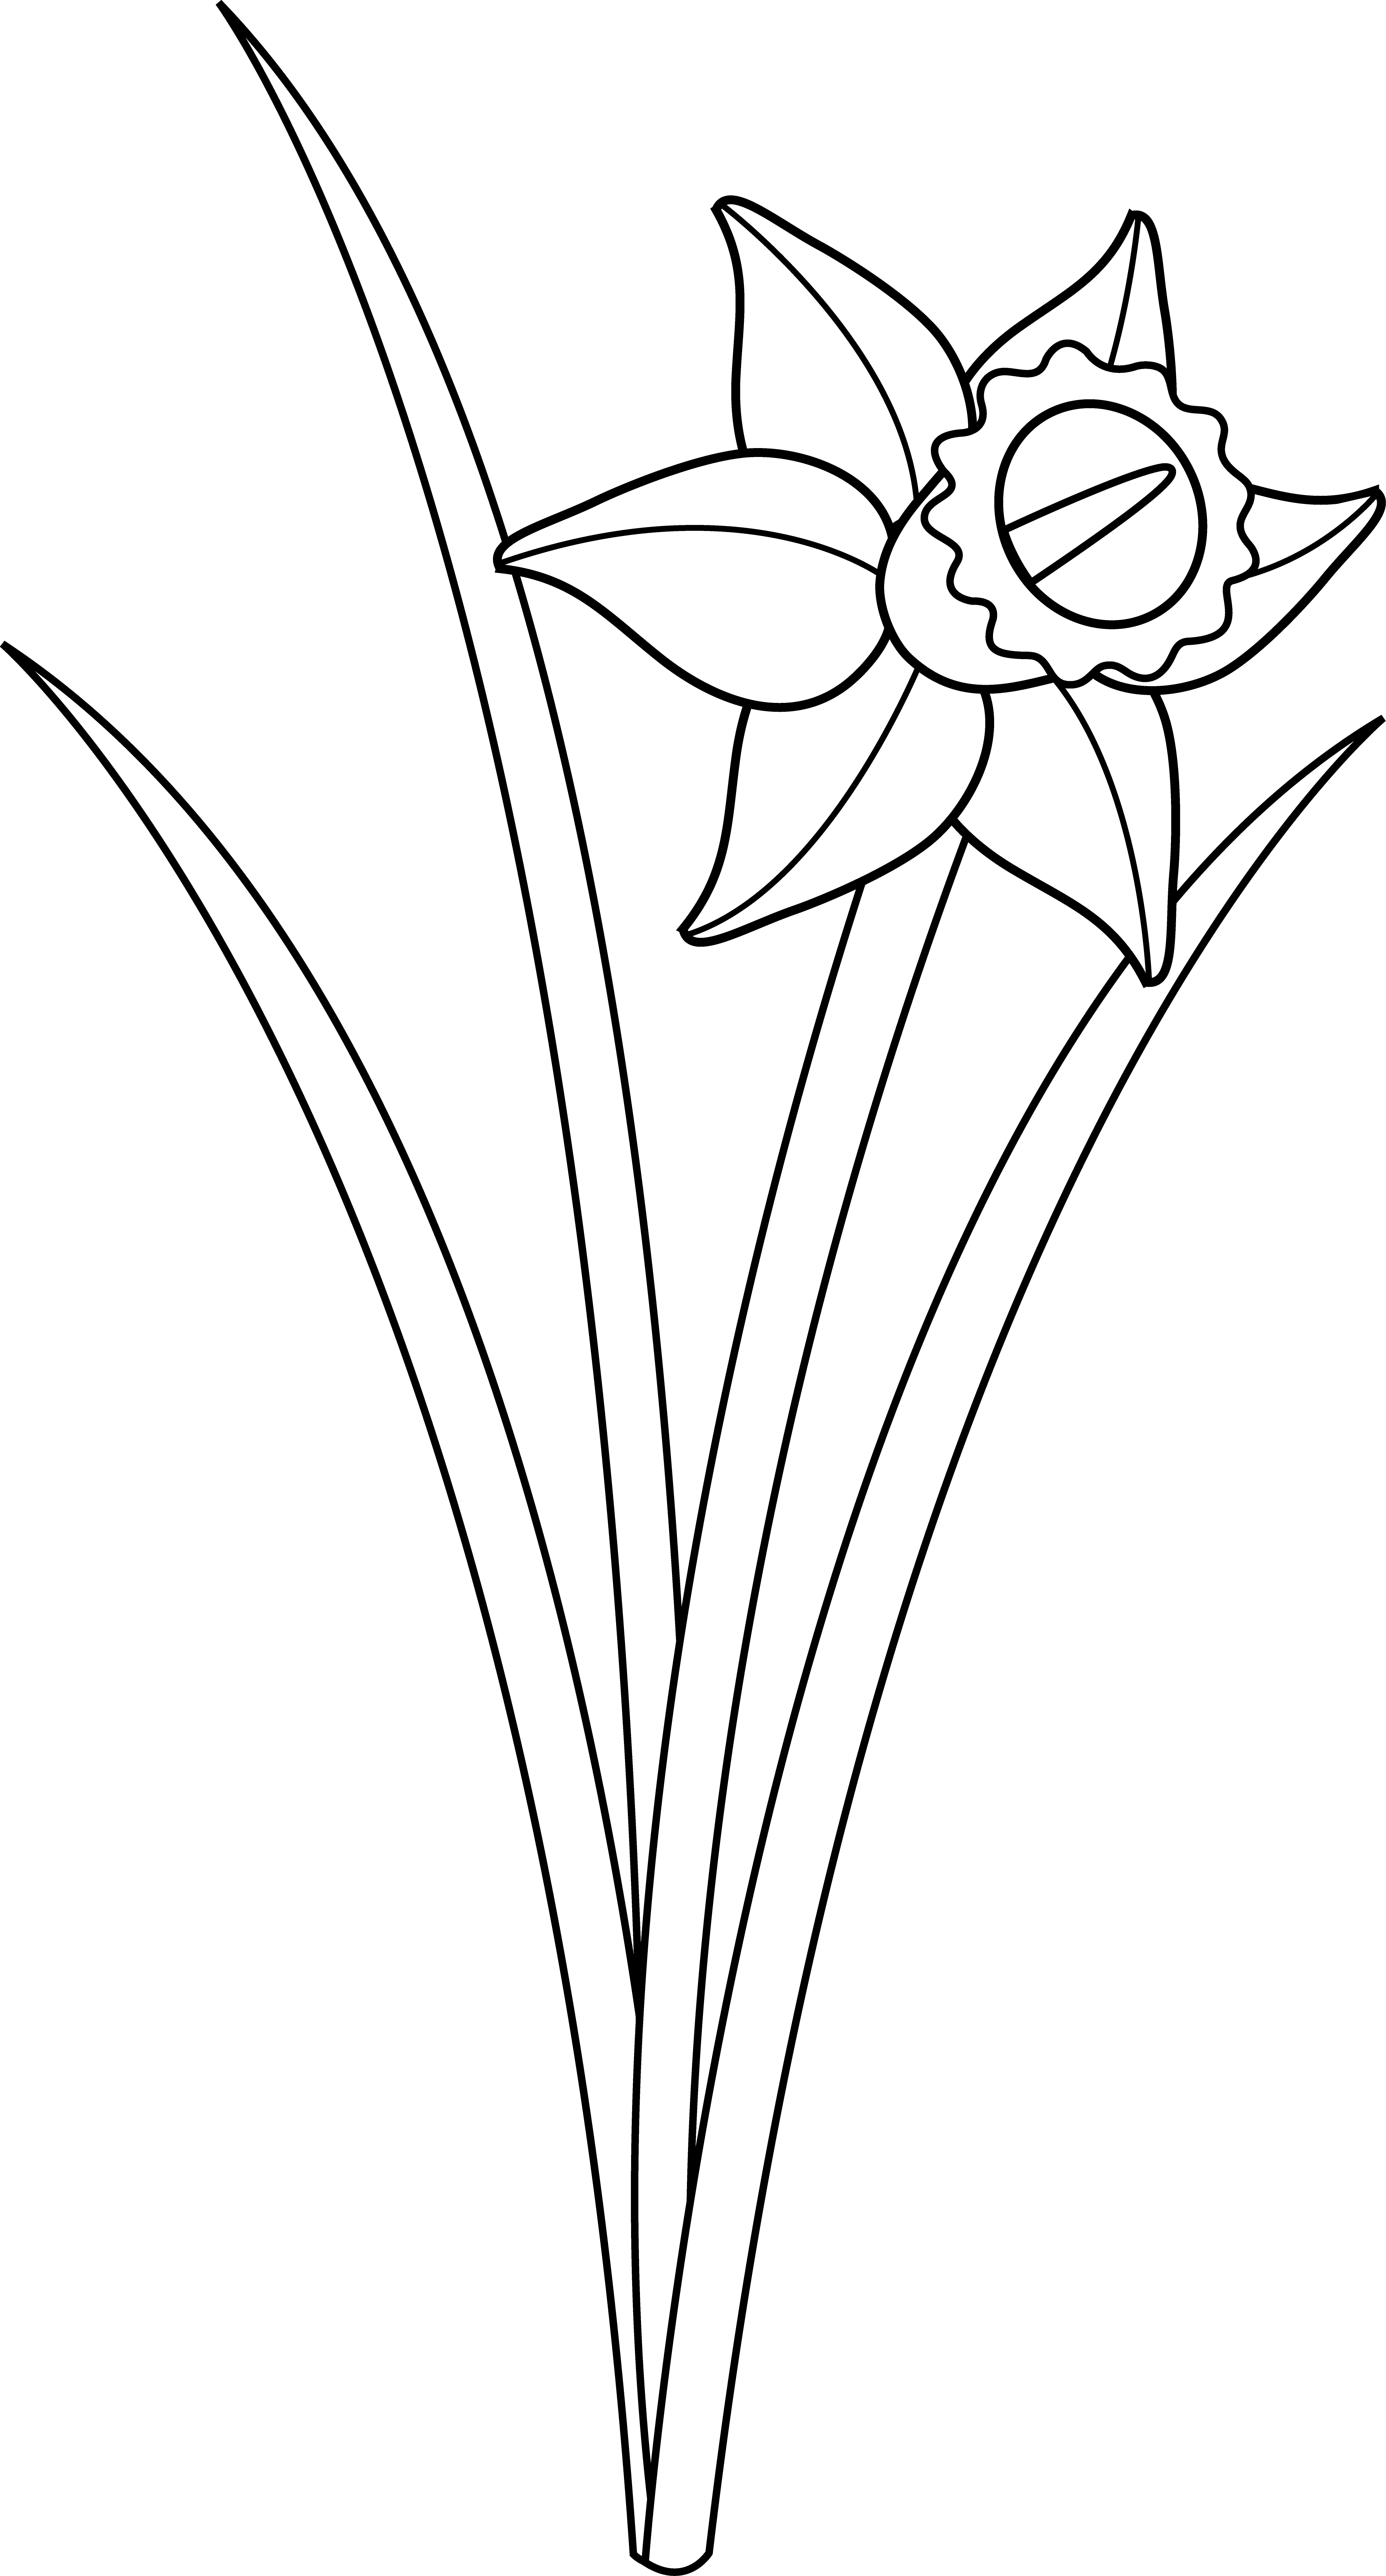 B&w flower clipart graphic transparent stock eletragesi: Daffodil Clipart Black And White Images graphic transparent stock